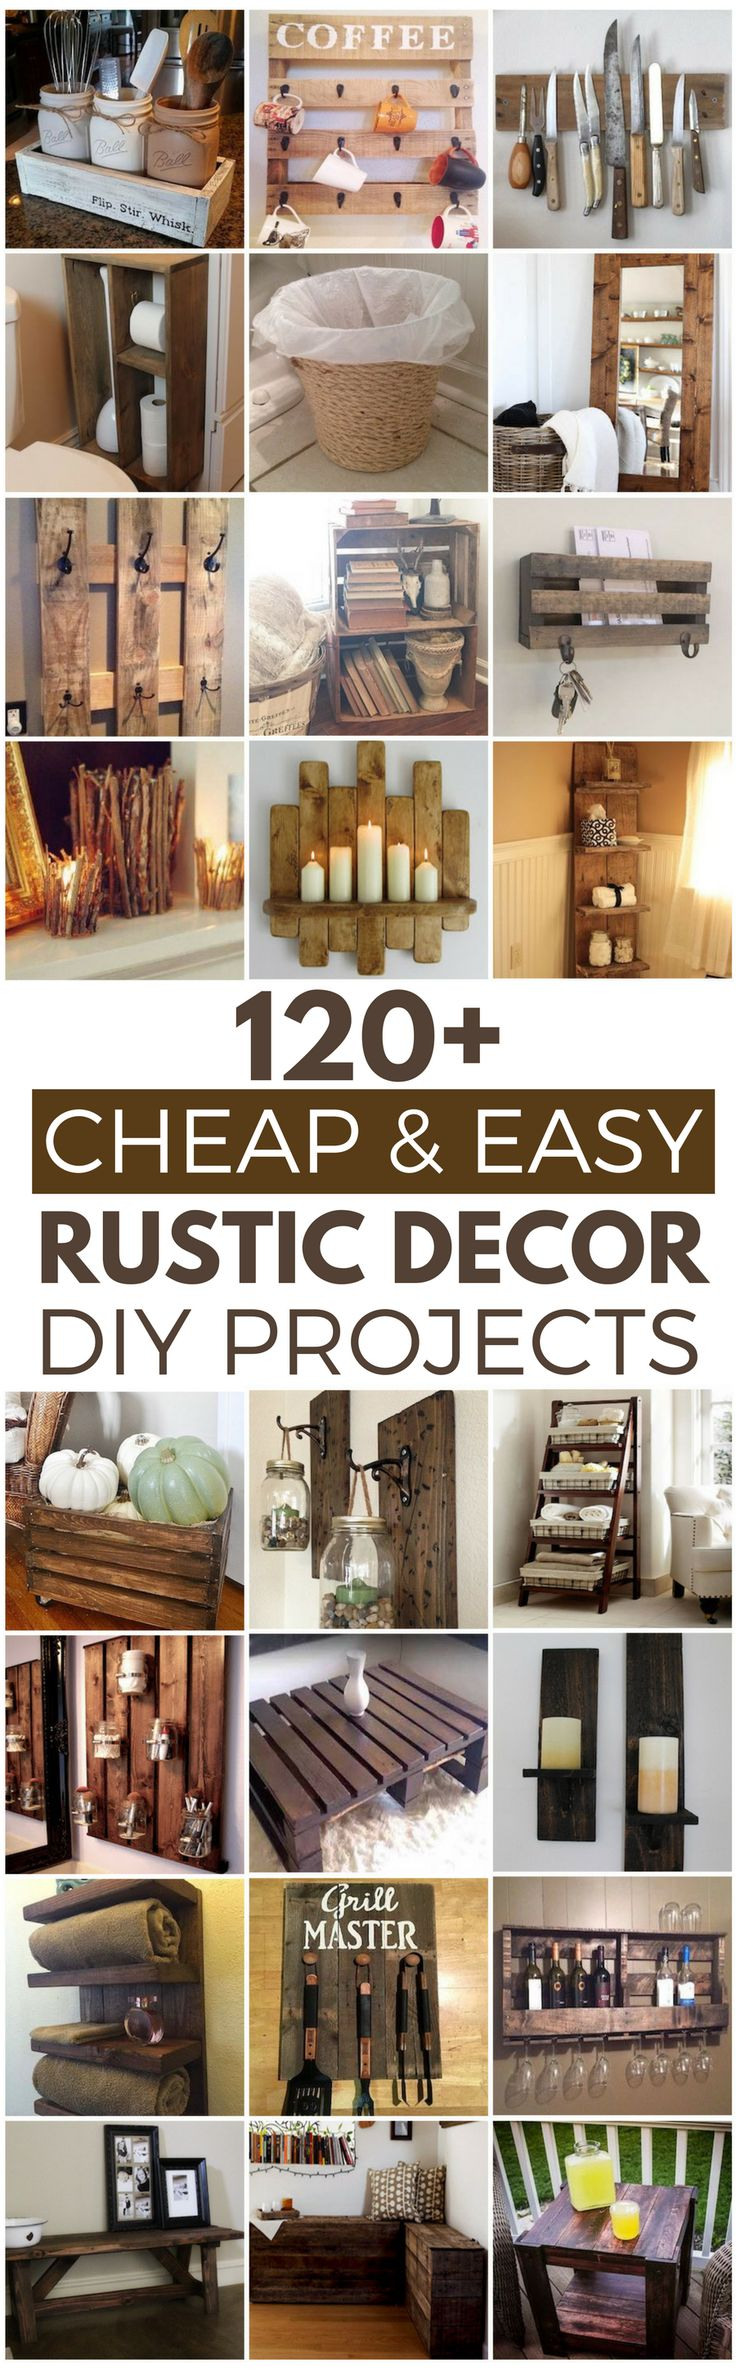 120 cheap and easy rustic diy home decor ideas - Cheap Diy Bedroom Decorating Ideas